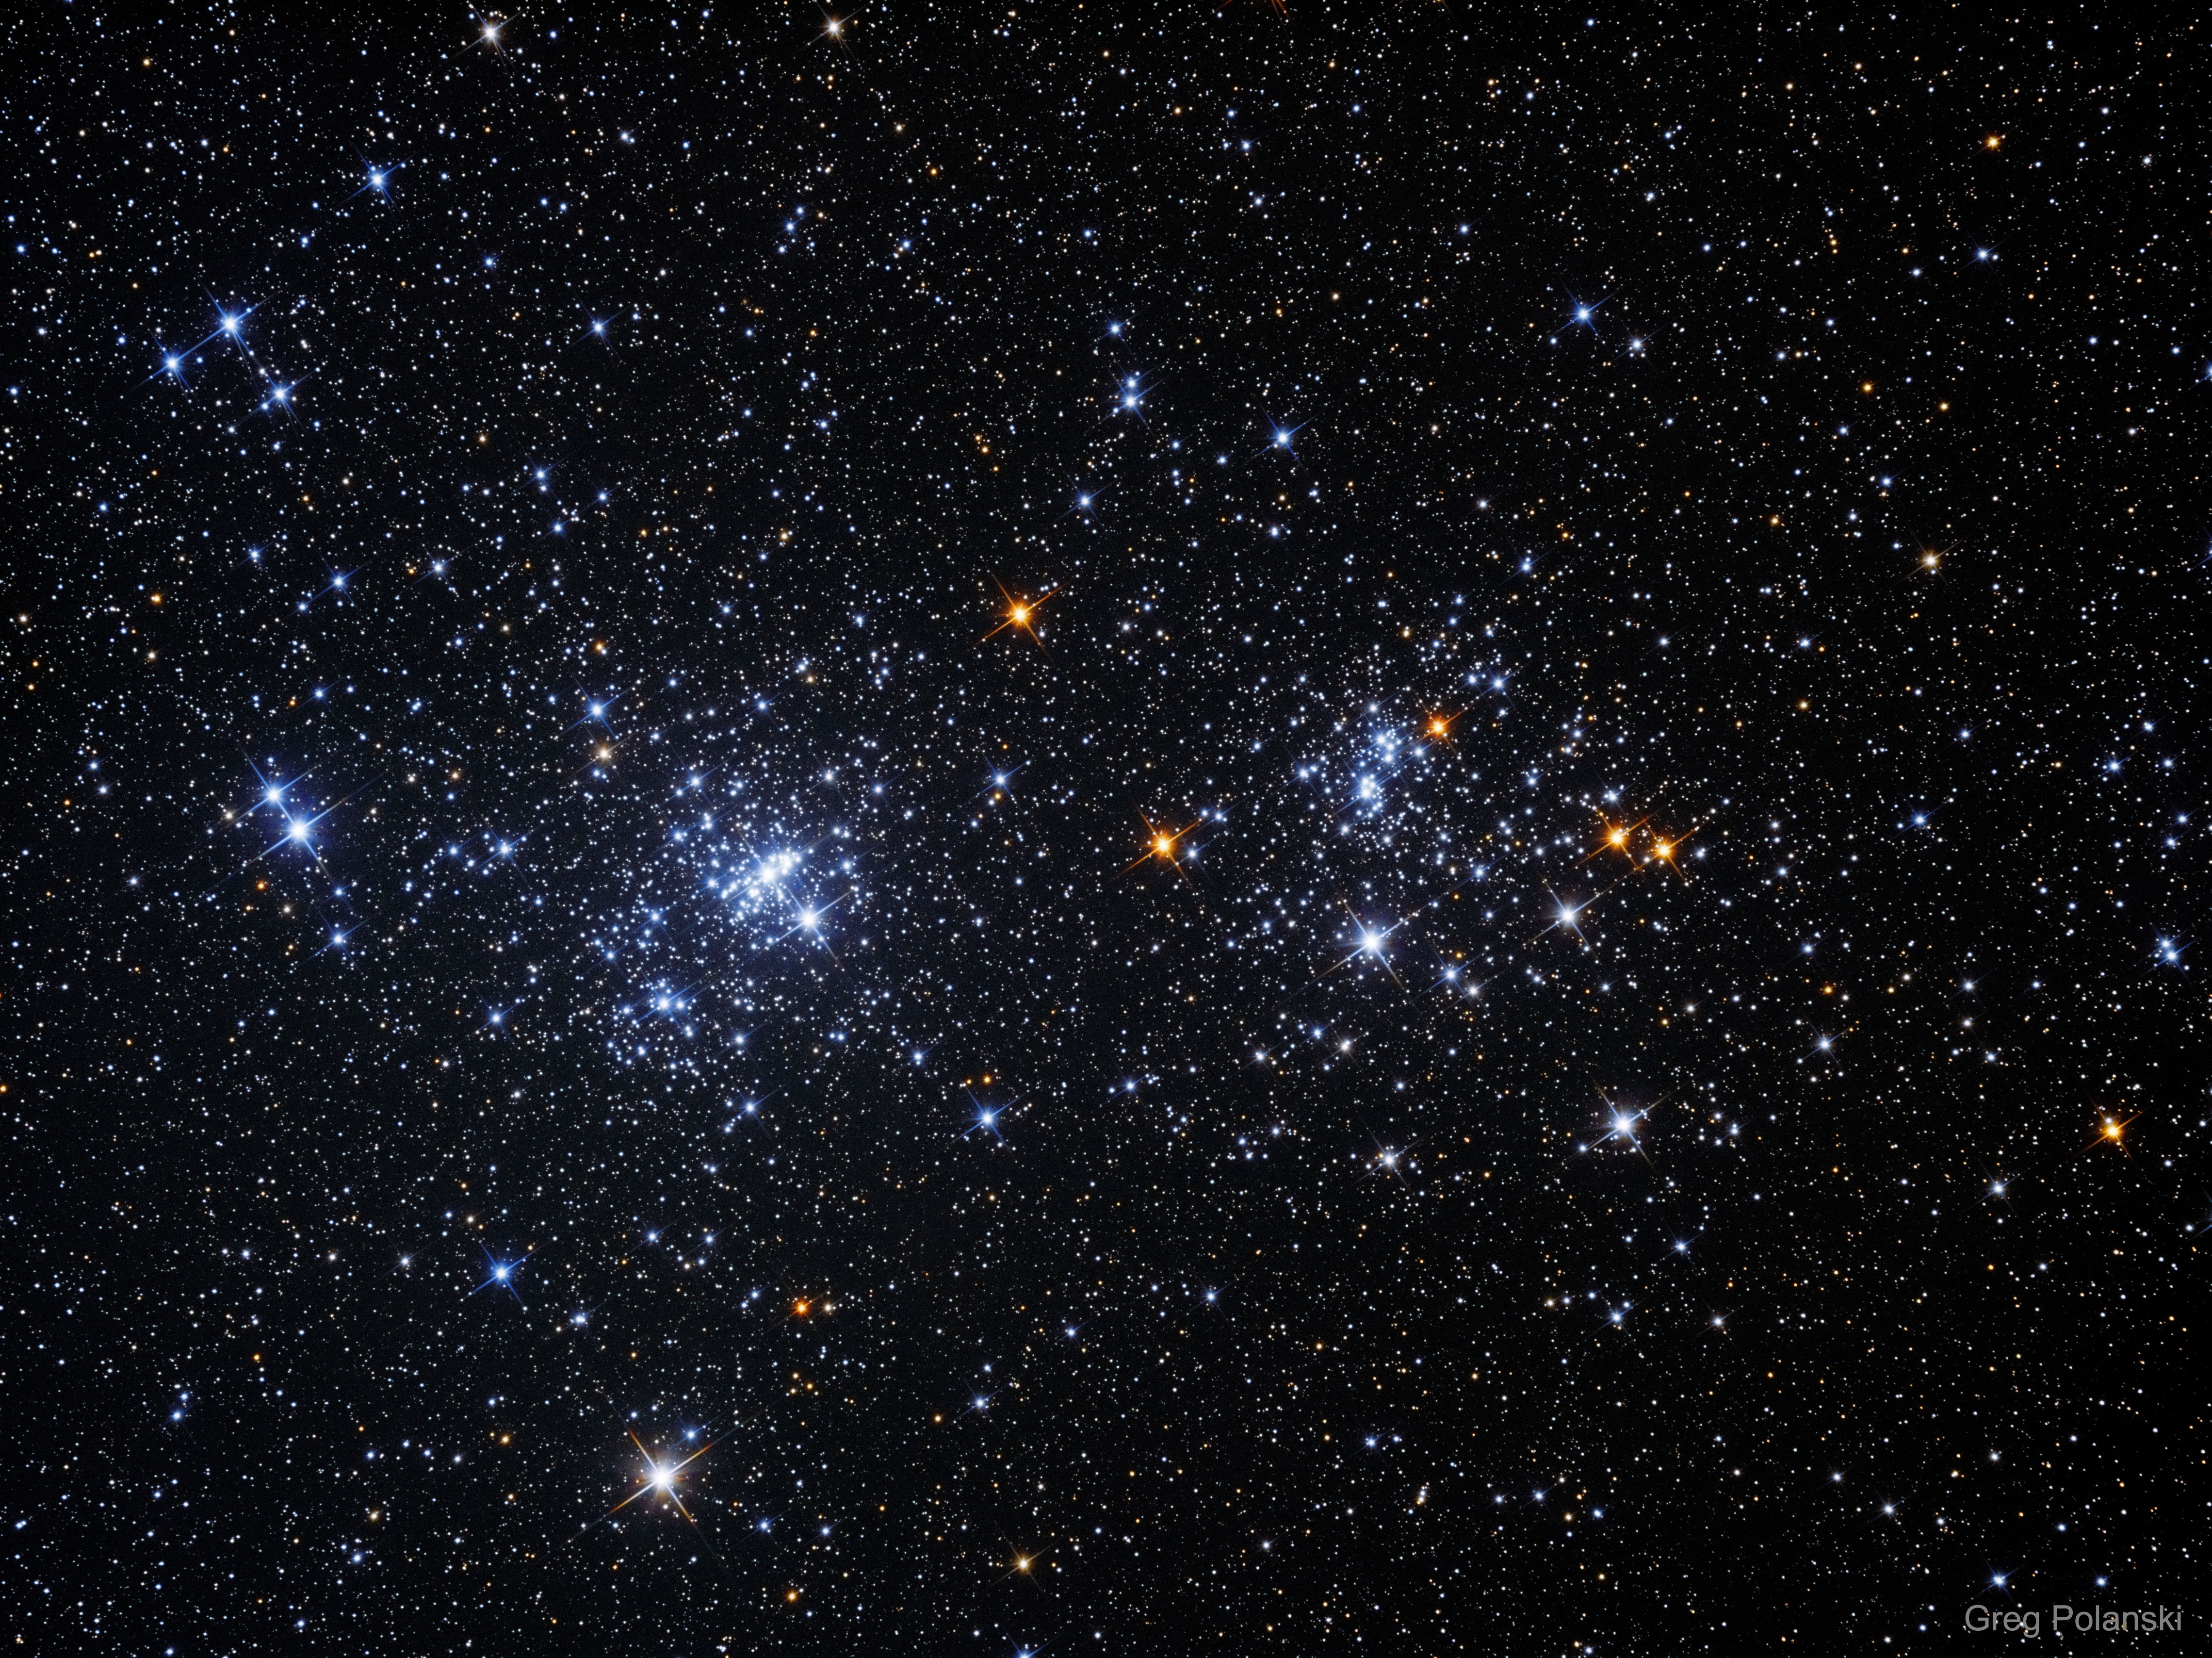 A Double Star Cluster in Perseus